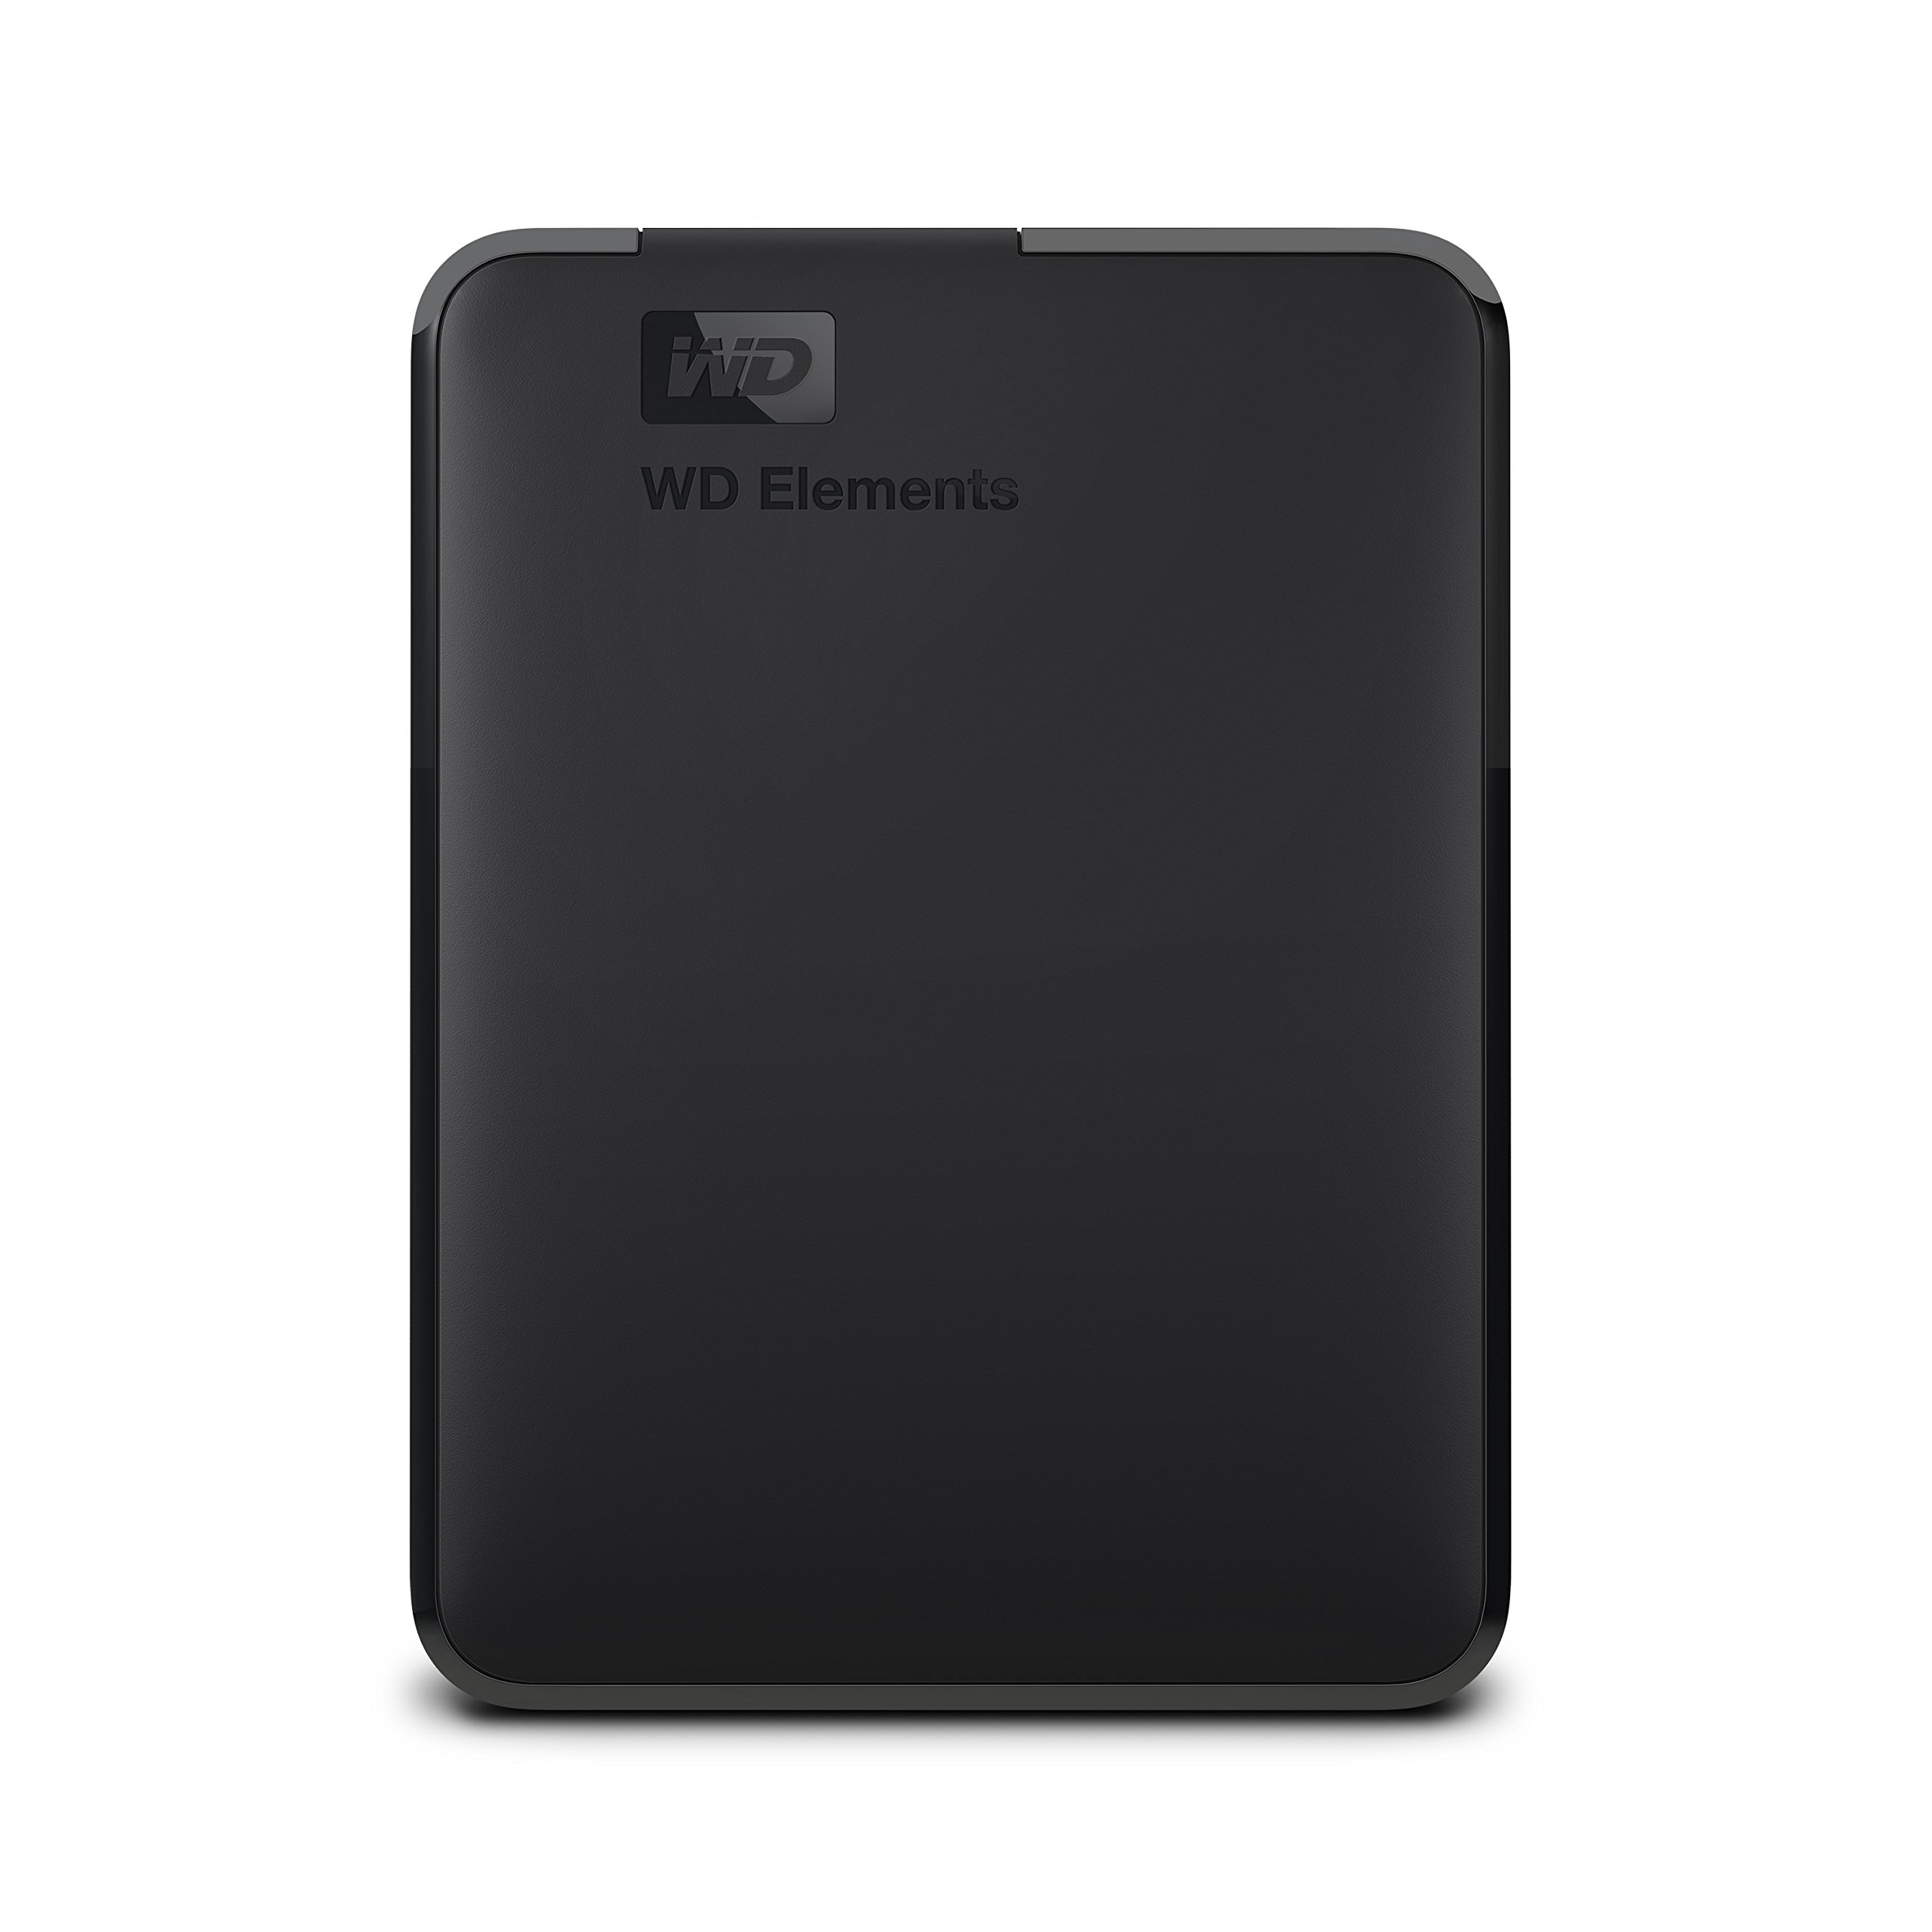 Western Digital 2TB Elements Portable External Hard Drive - USB 3.0 - WDBU6Y0020BBK-WESN by Western Digital